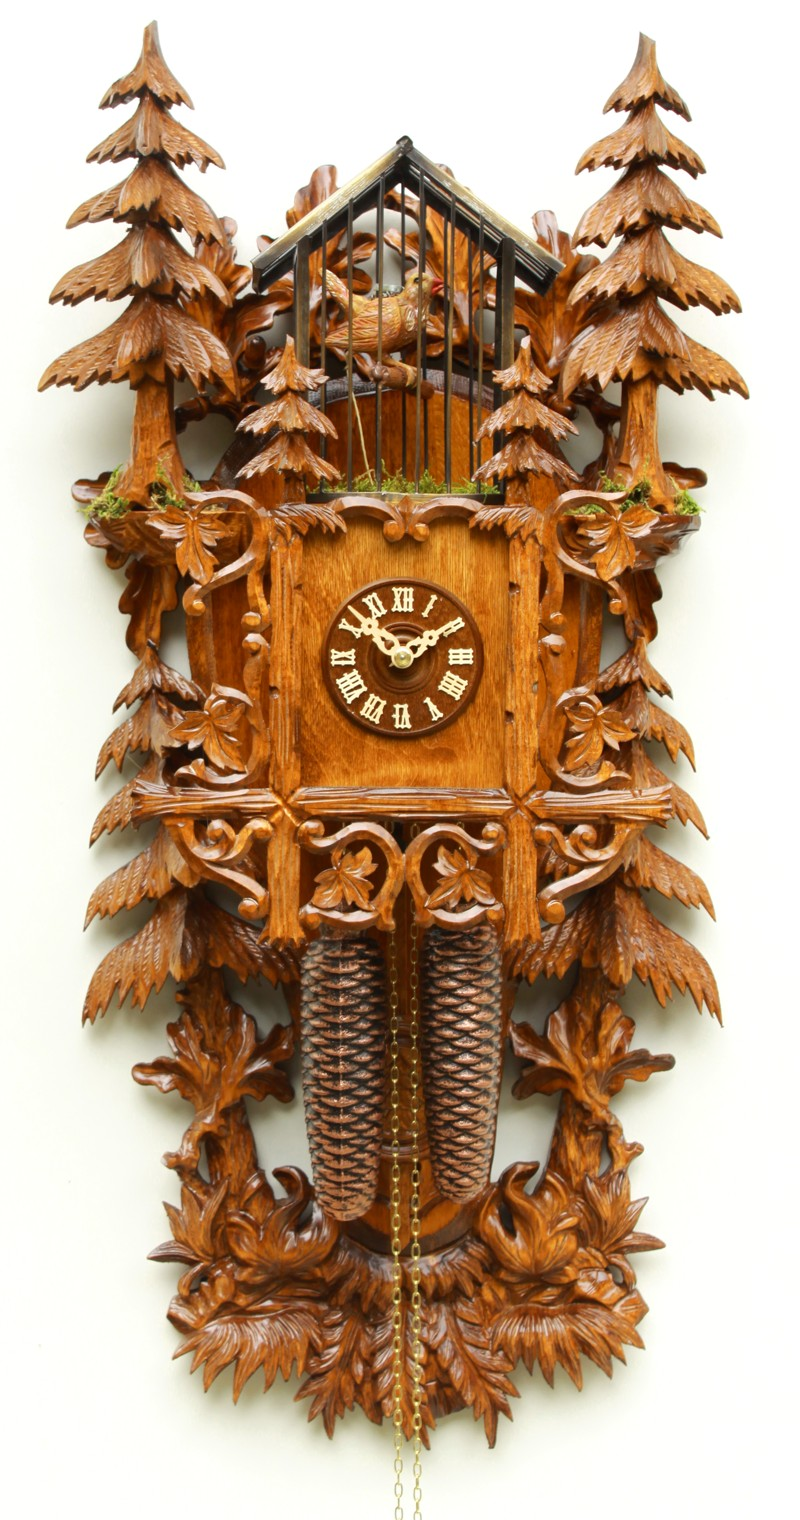 Cuckoo Clock Christmas Trees 8-Day Movement - Cuckoo Clock Meister